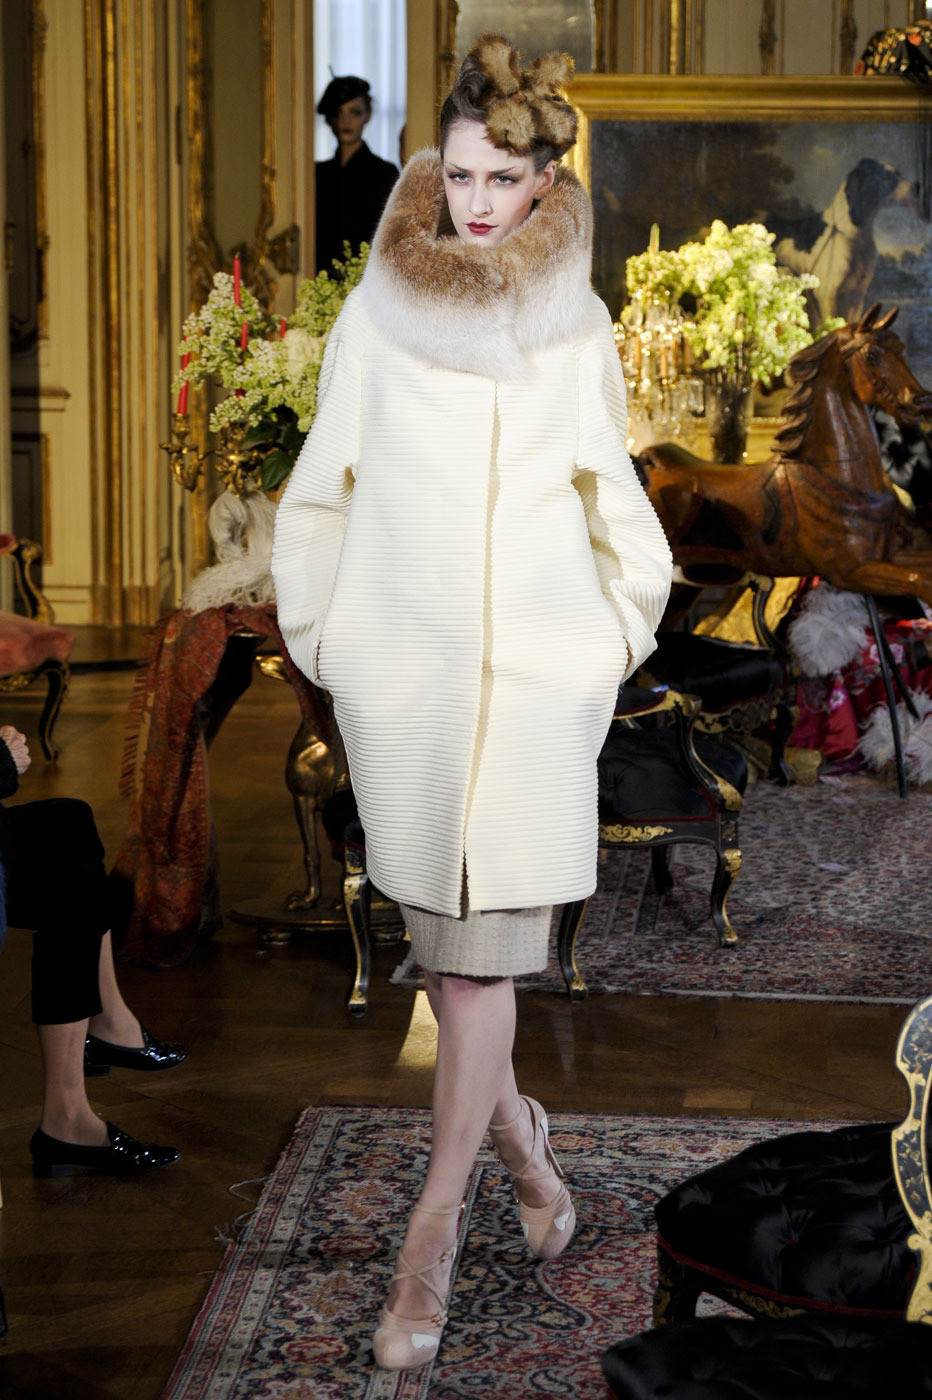 via fashioned by love | John Galliano for John Galliano Fall/Winter 2011